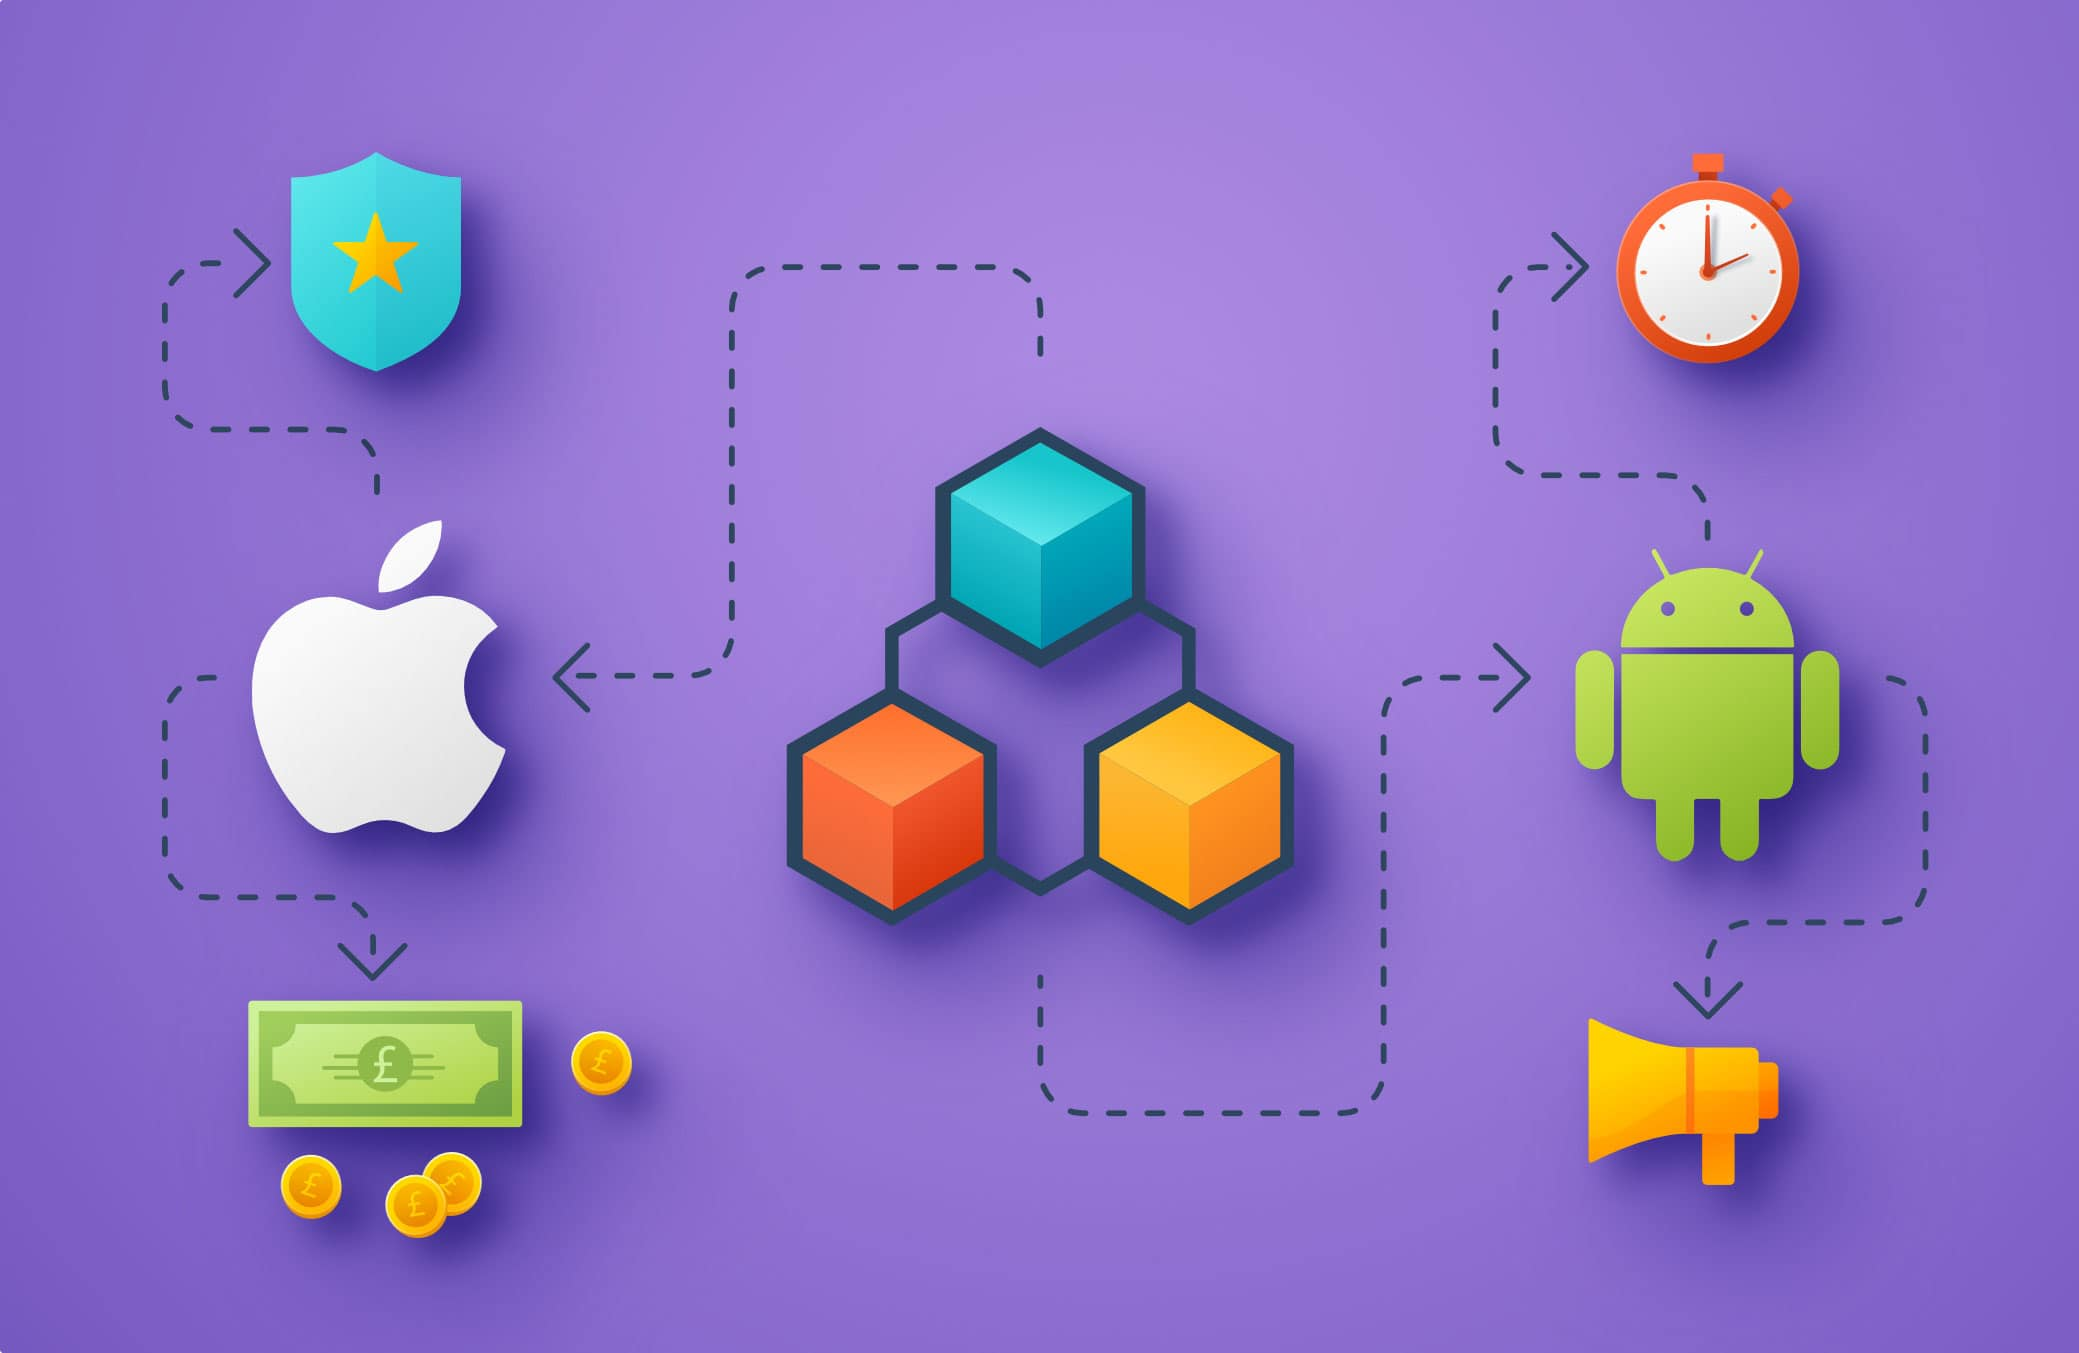 I have an idea for an app. Which platform is best for my idea?